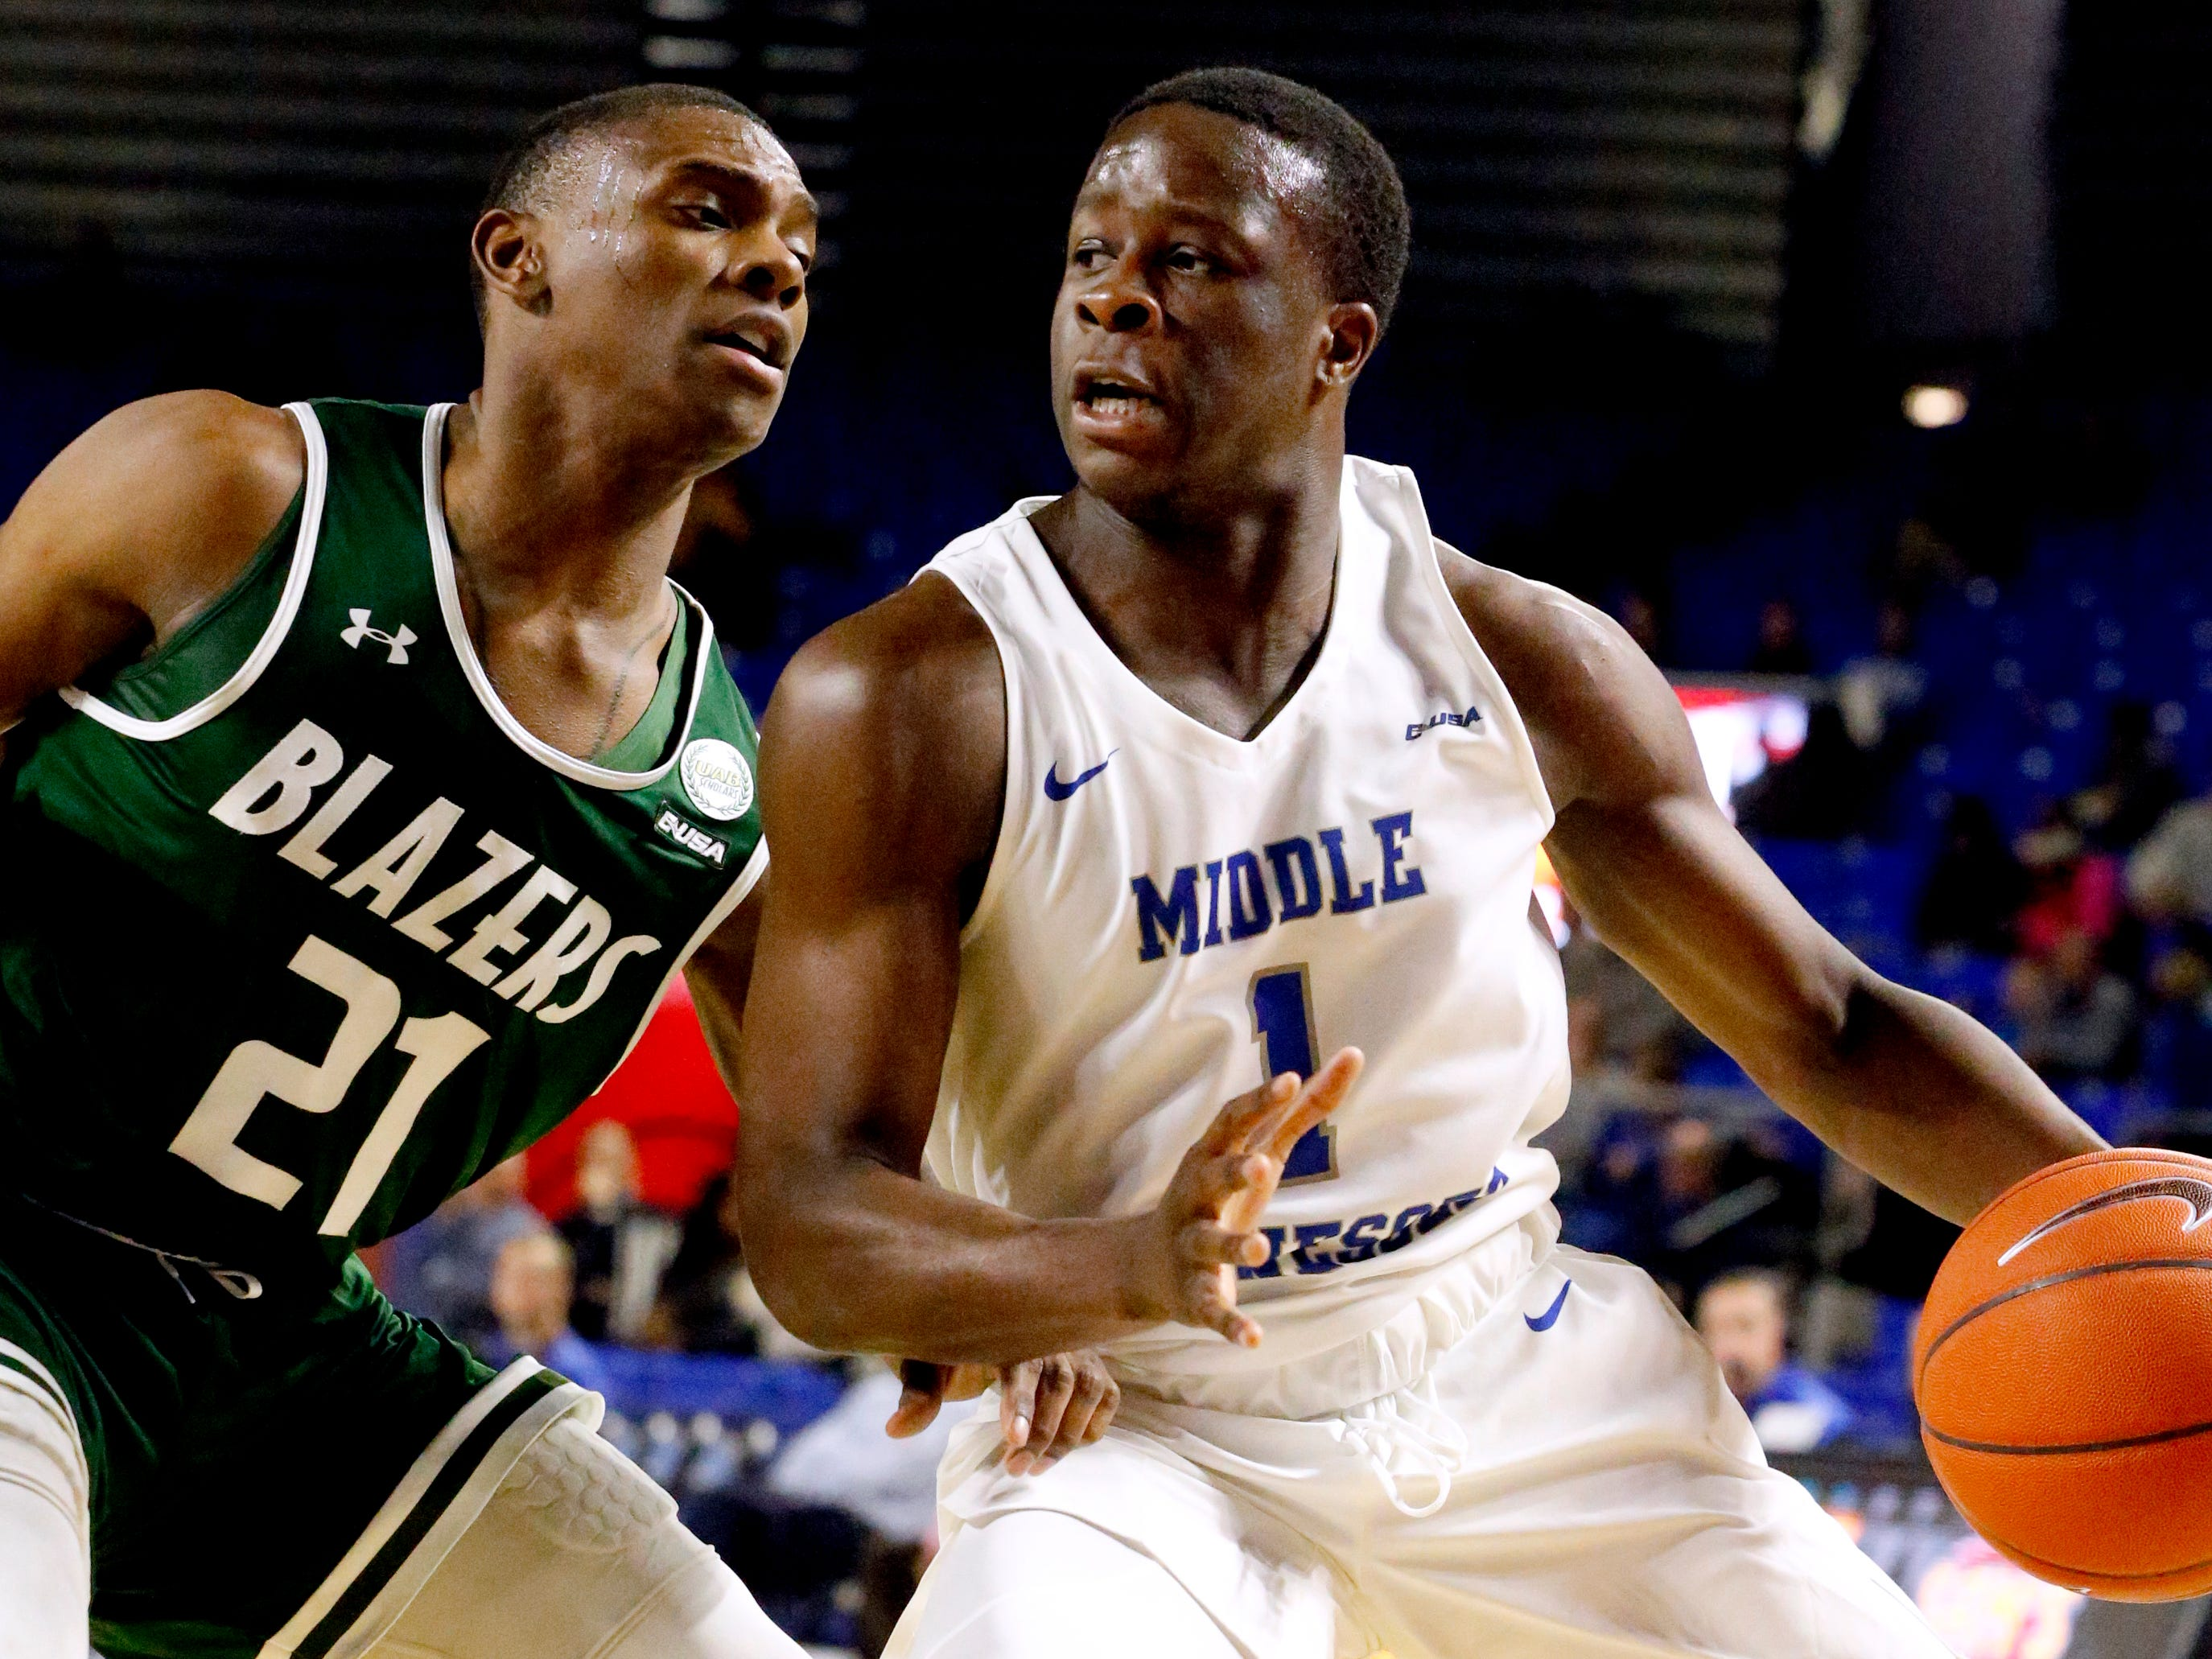 MTSU guard Junior Farquhar (1) drives to the basket as UAB's guard Jalen Perry (21) guards him on Wednesday Jan. 30, 2019.